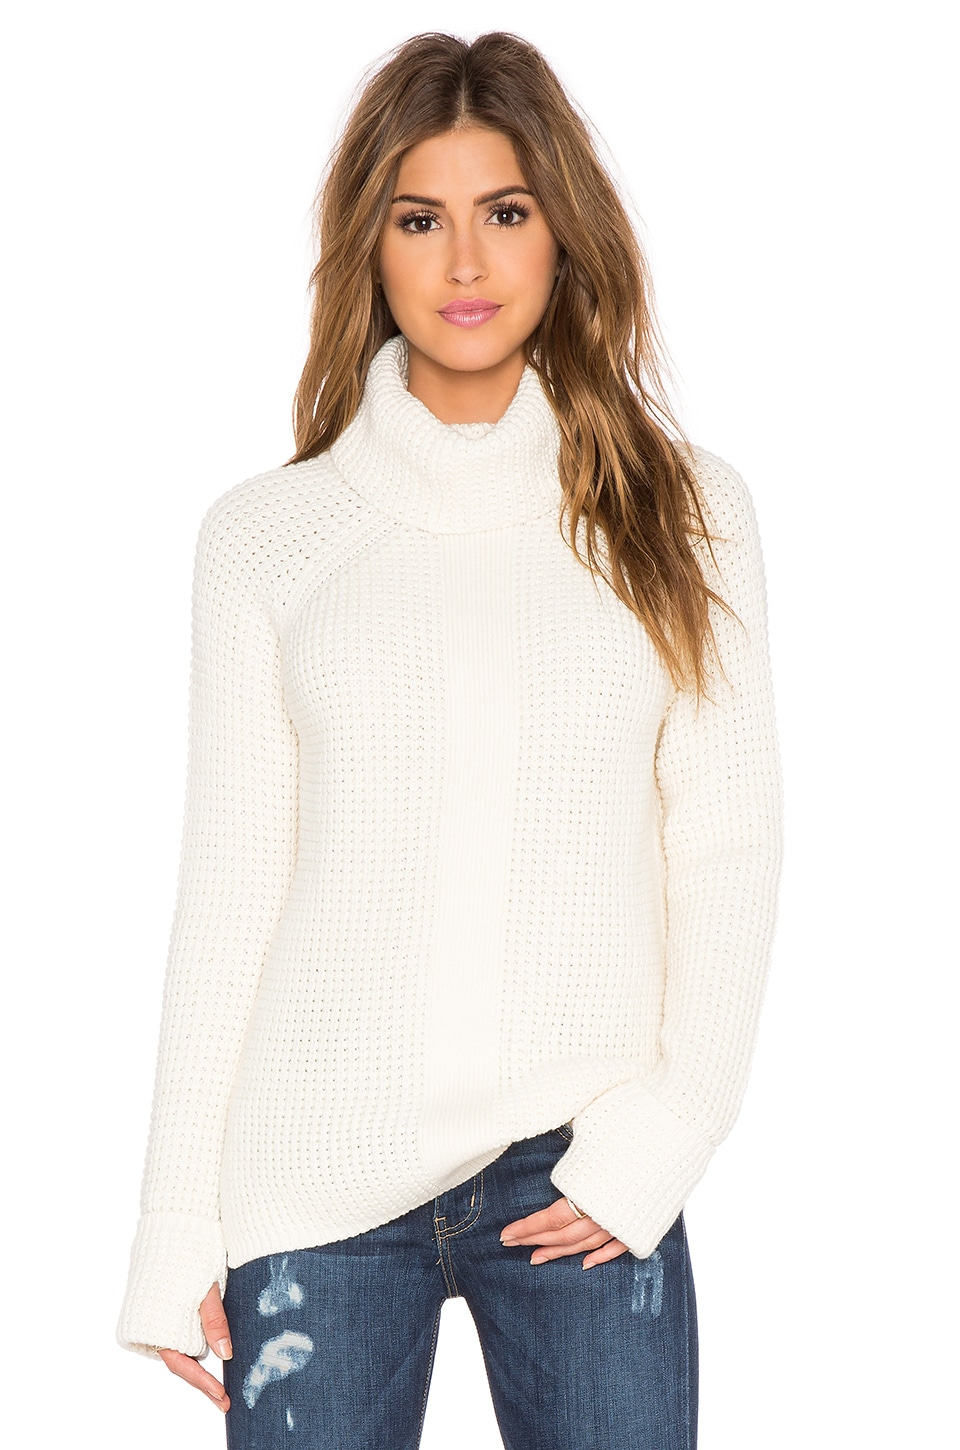 525 america Thumbhole Loose Turtleneck Sweater in White Cap | REVOLVE